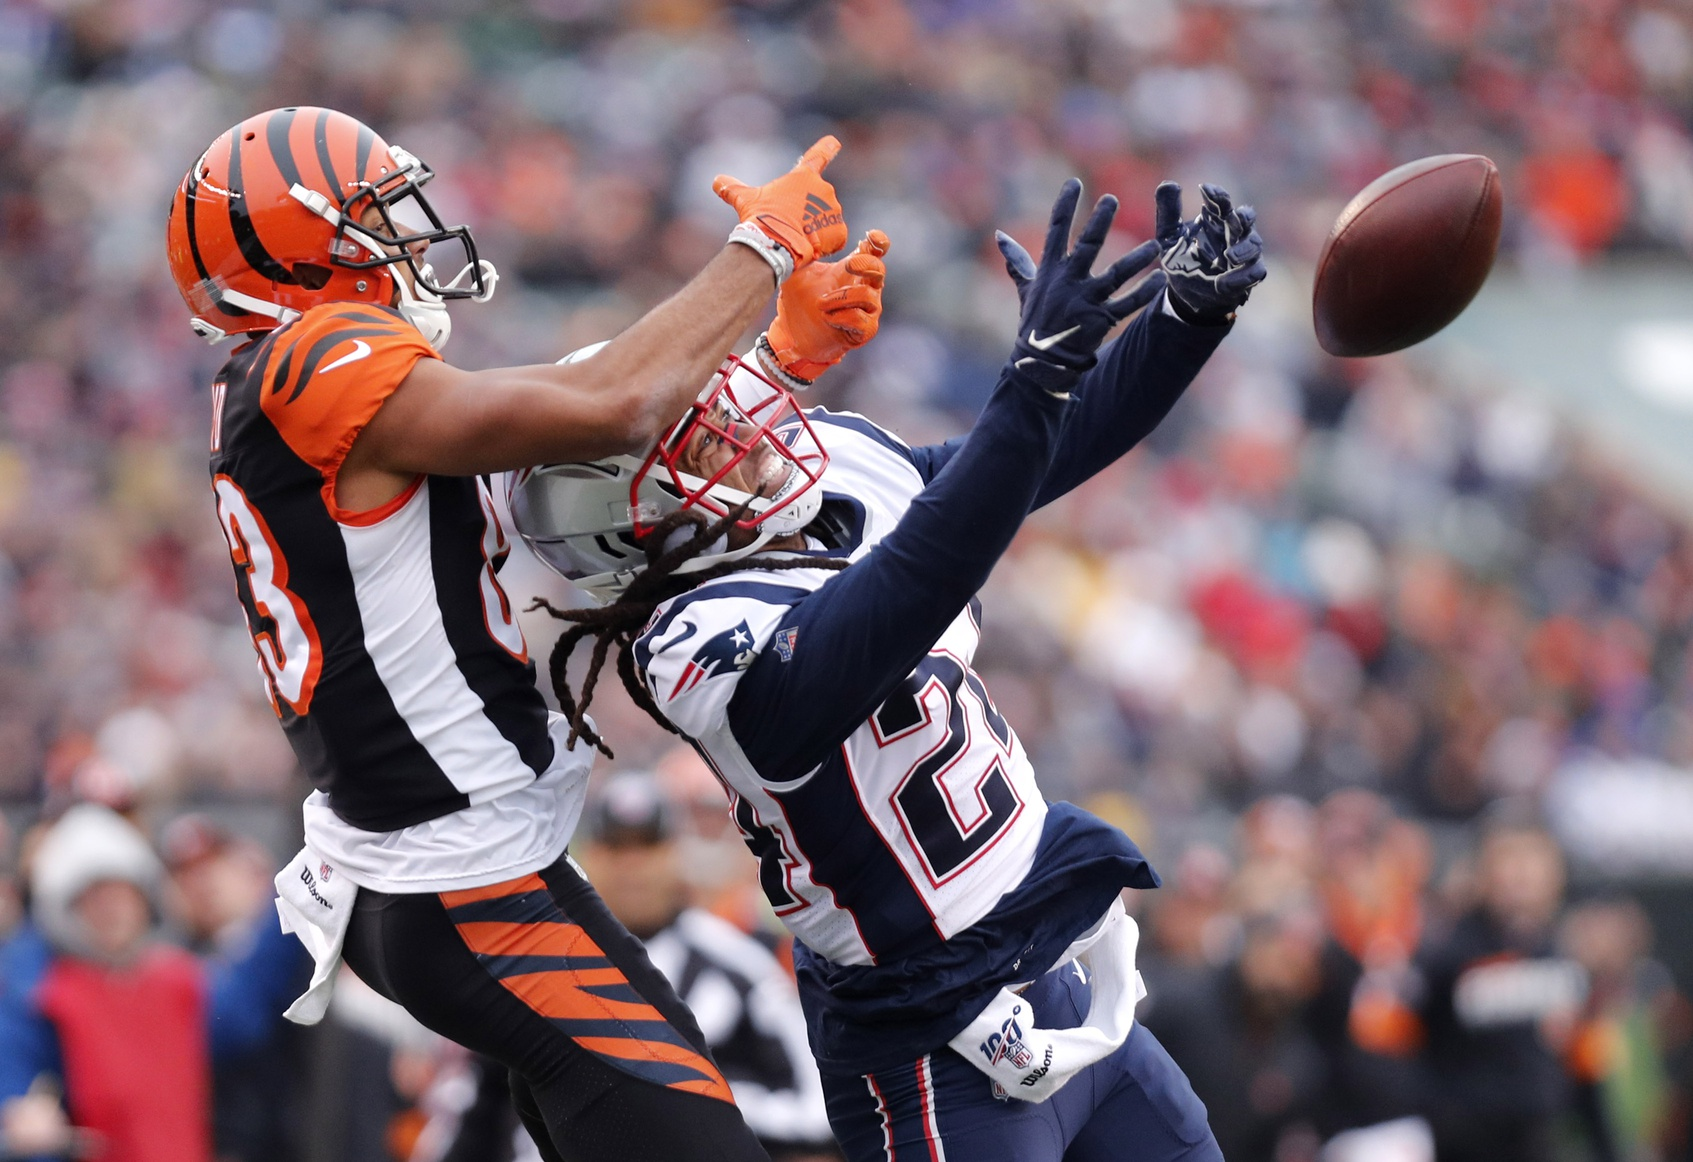 Should Lions Call Patriots to Trade for CB Stephon Gilmore?